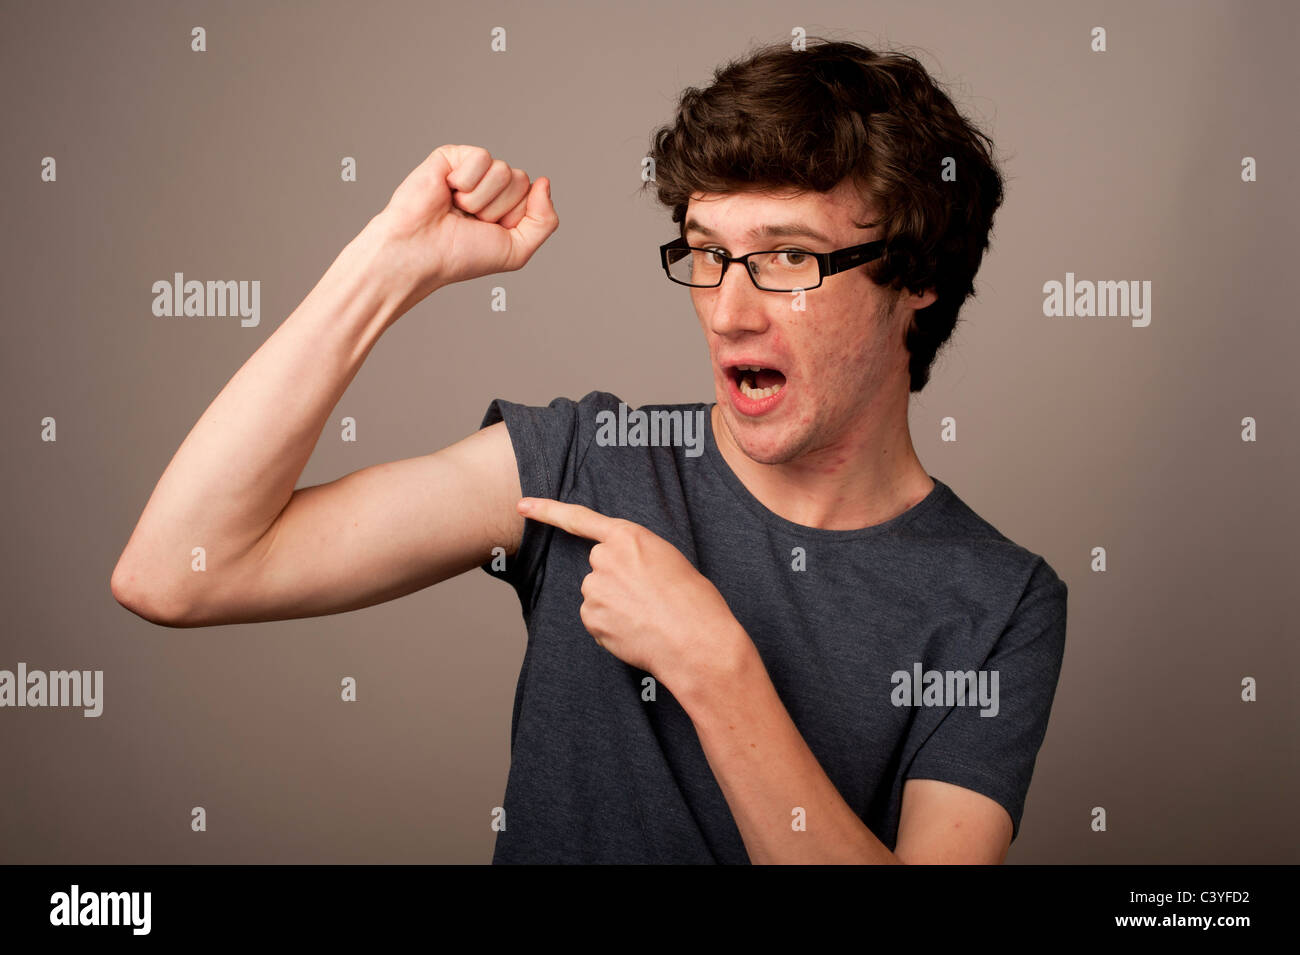 a spotty faced weak feeble geek nerd young man with thin arms wearing glasses flexing his muscles UK - Stock Image